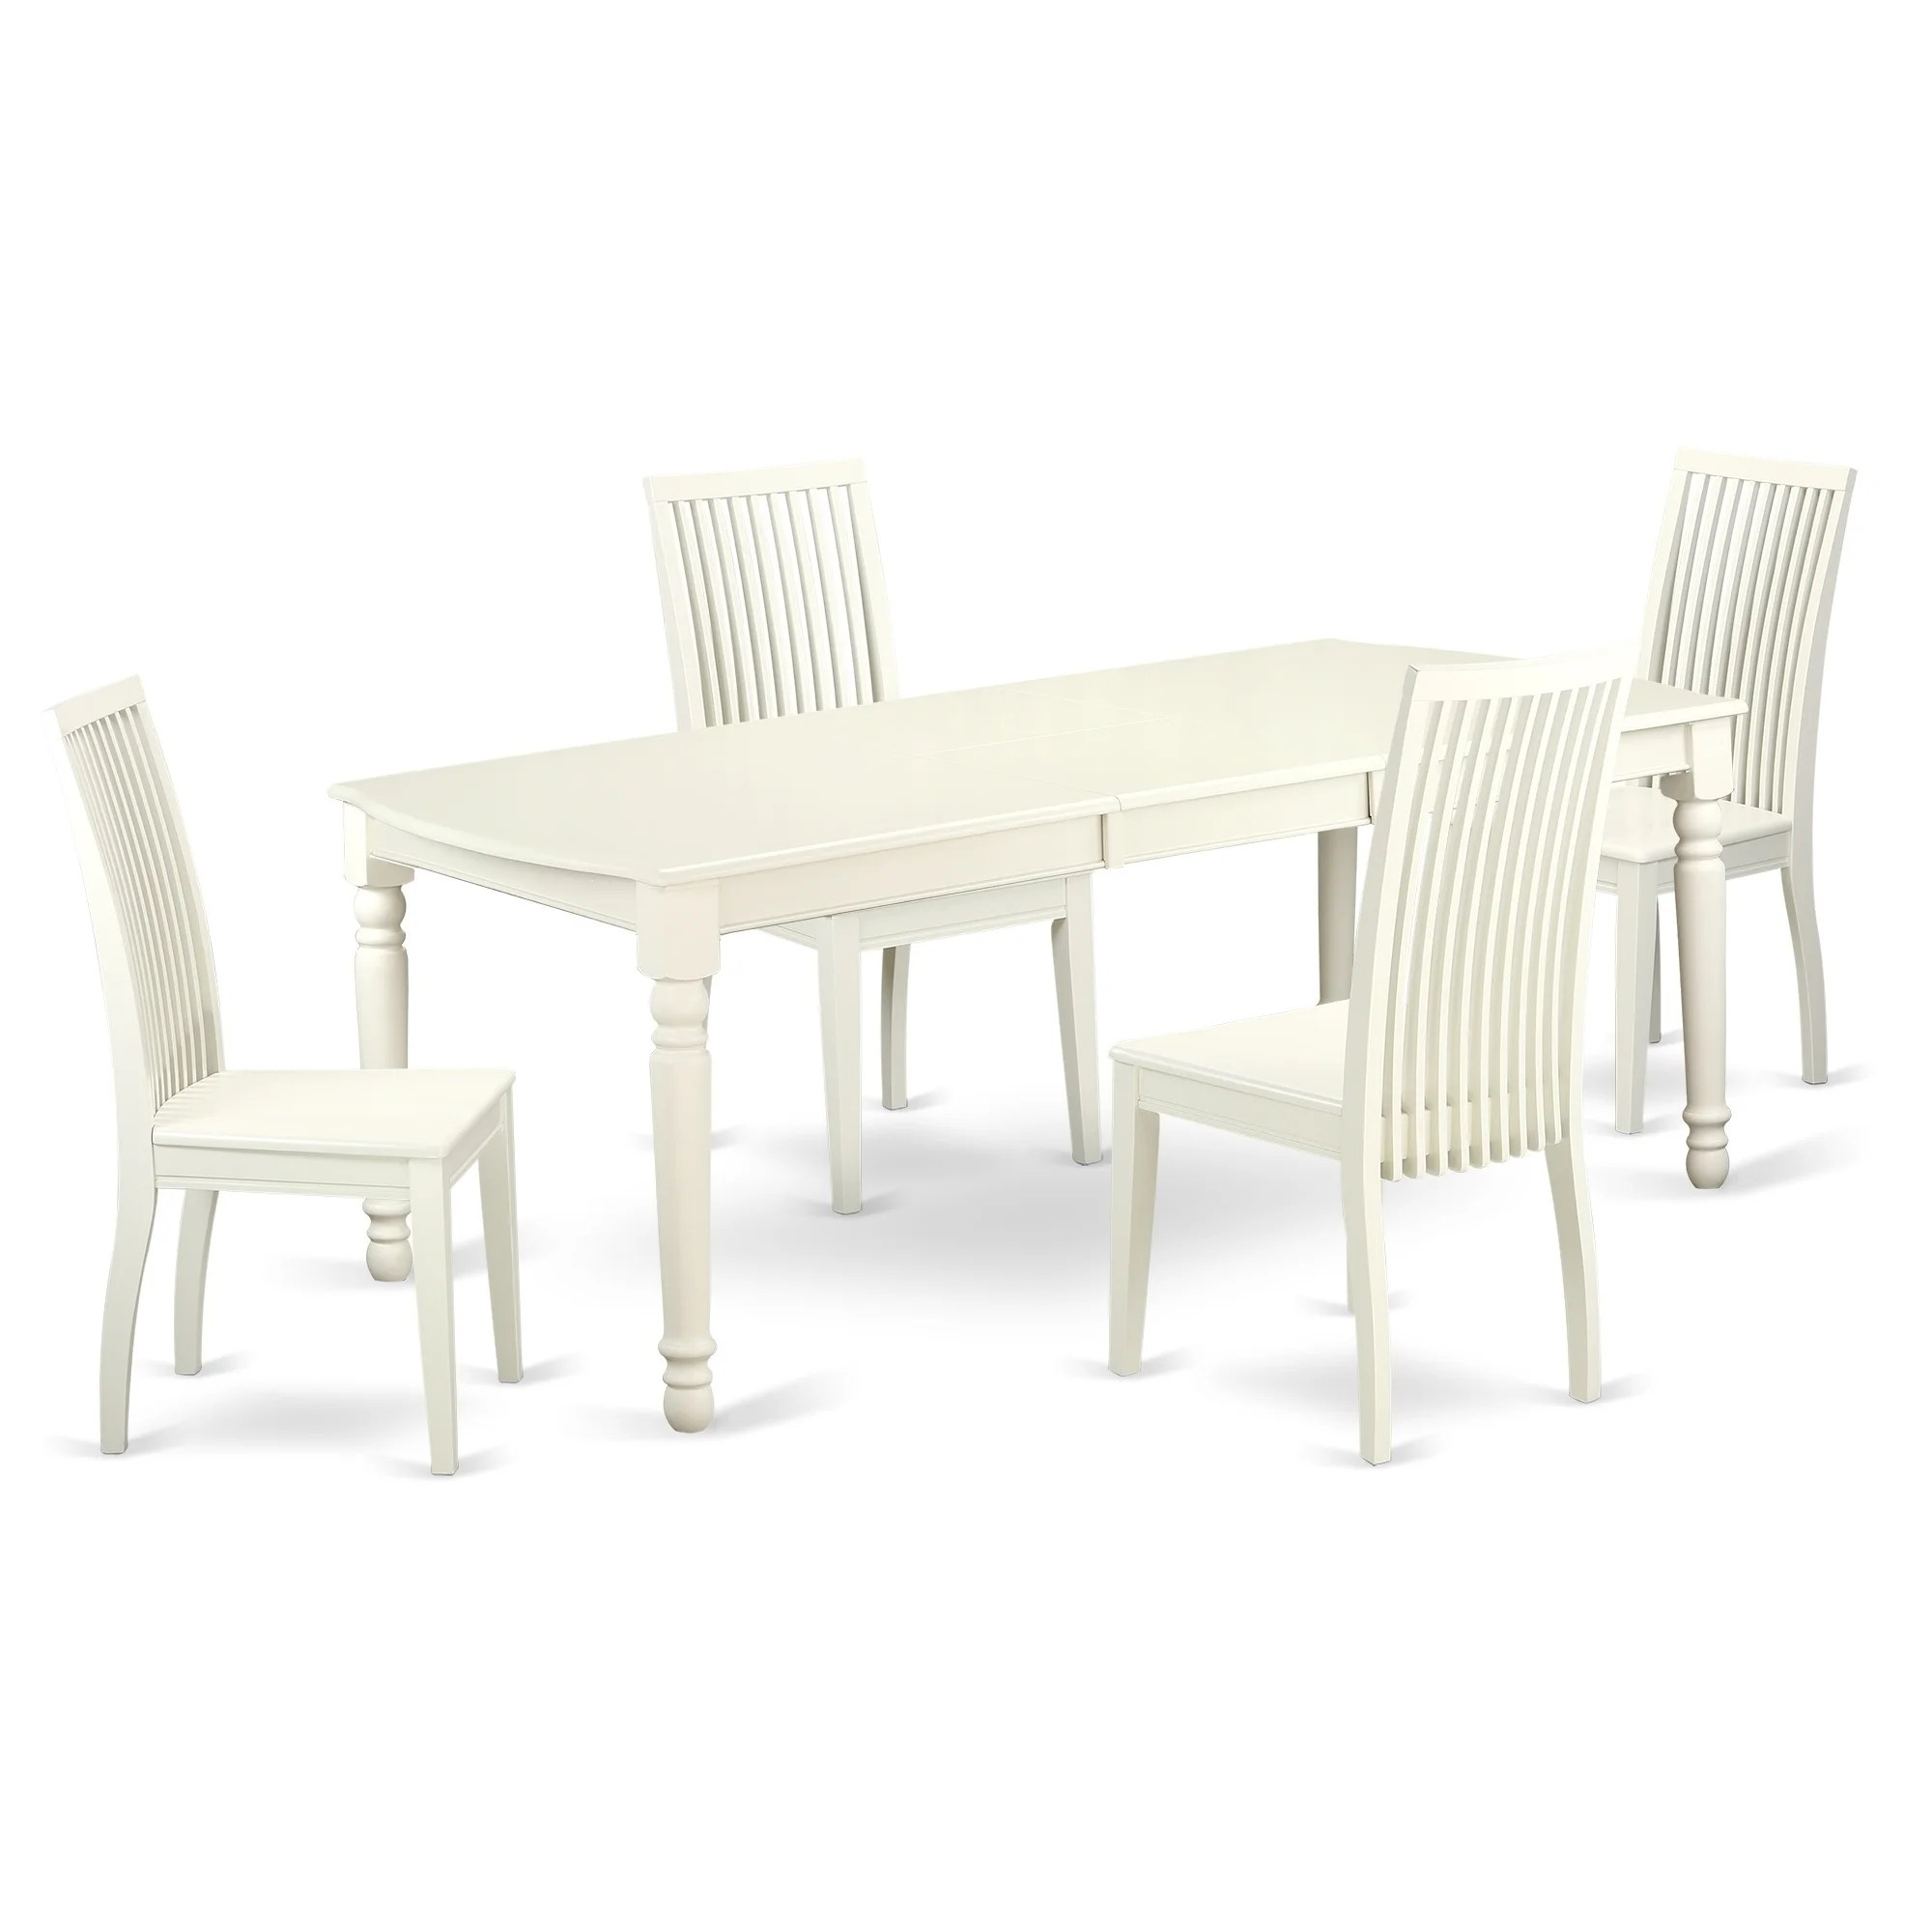 Set Of 4 Kitchen Chairs Kitchen Chairs Set Of 4